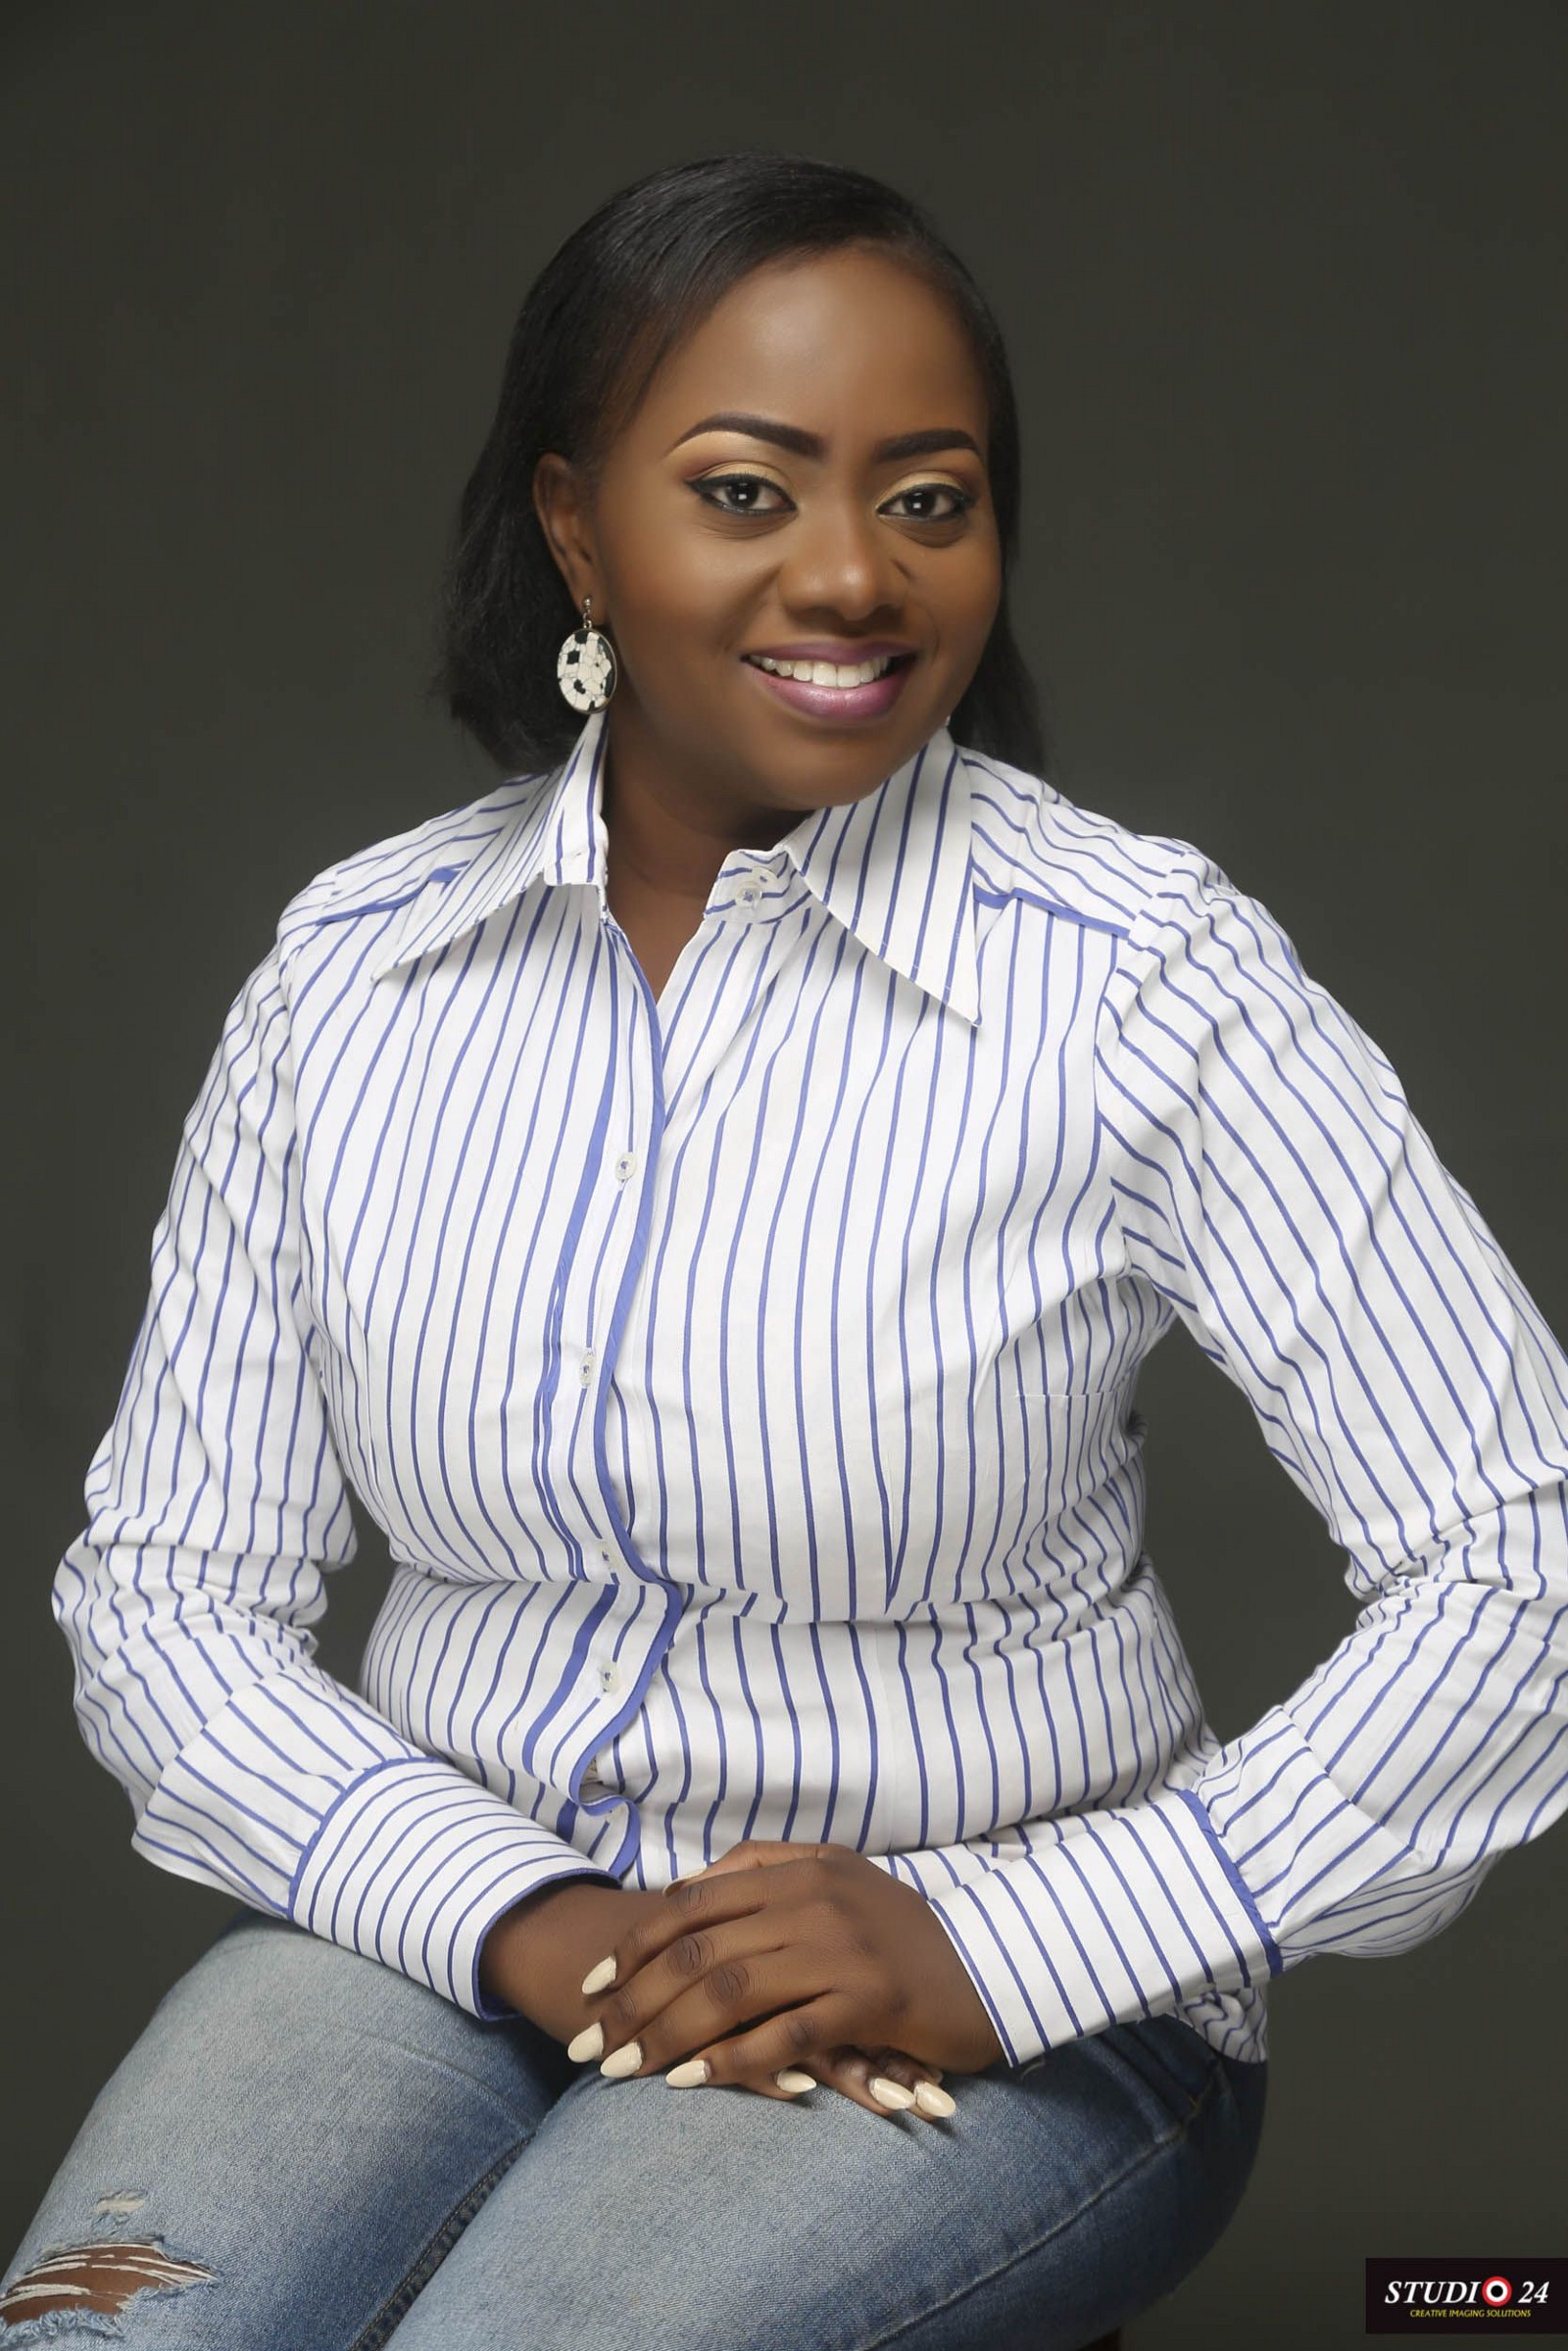 UK-trained Nigerian lawyer wants to help SMEs succeed